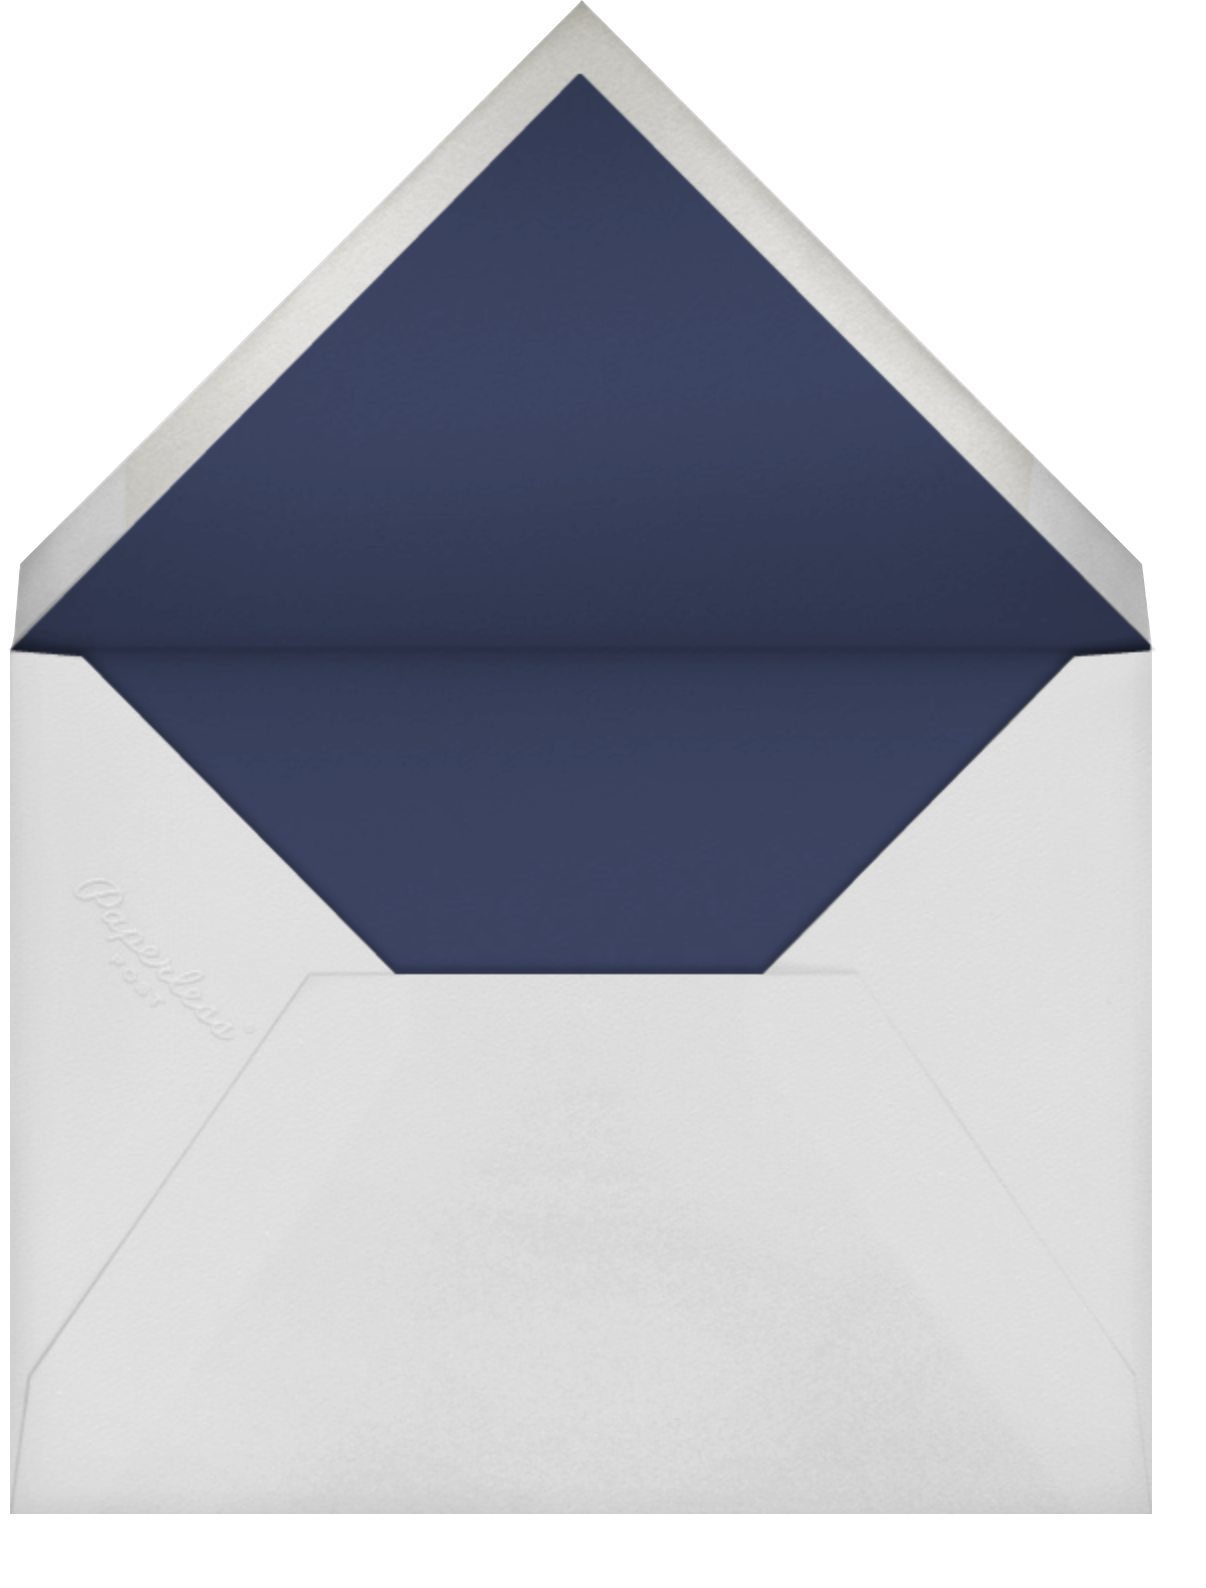 Full-Page Photo (Single-Sided) - Square - Paperless Post - Adult birthday - envelope back